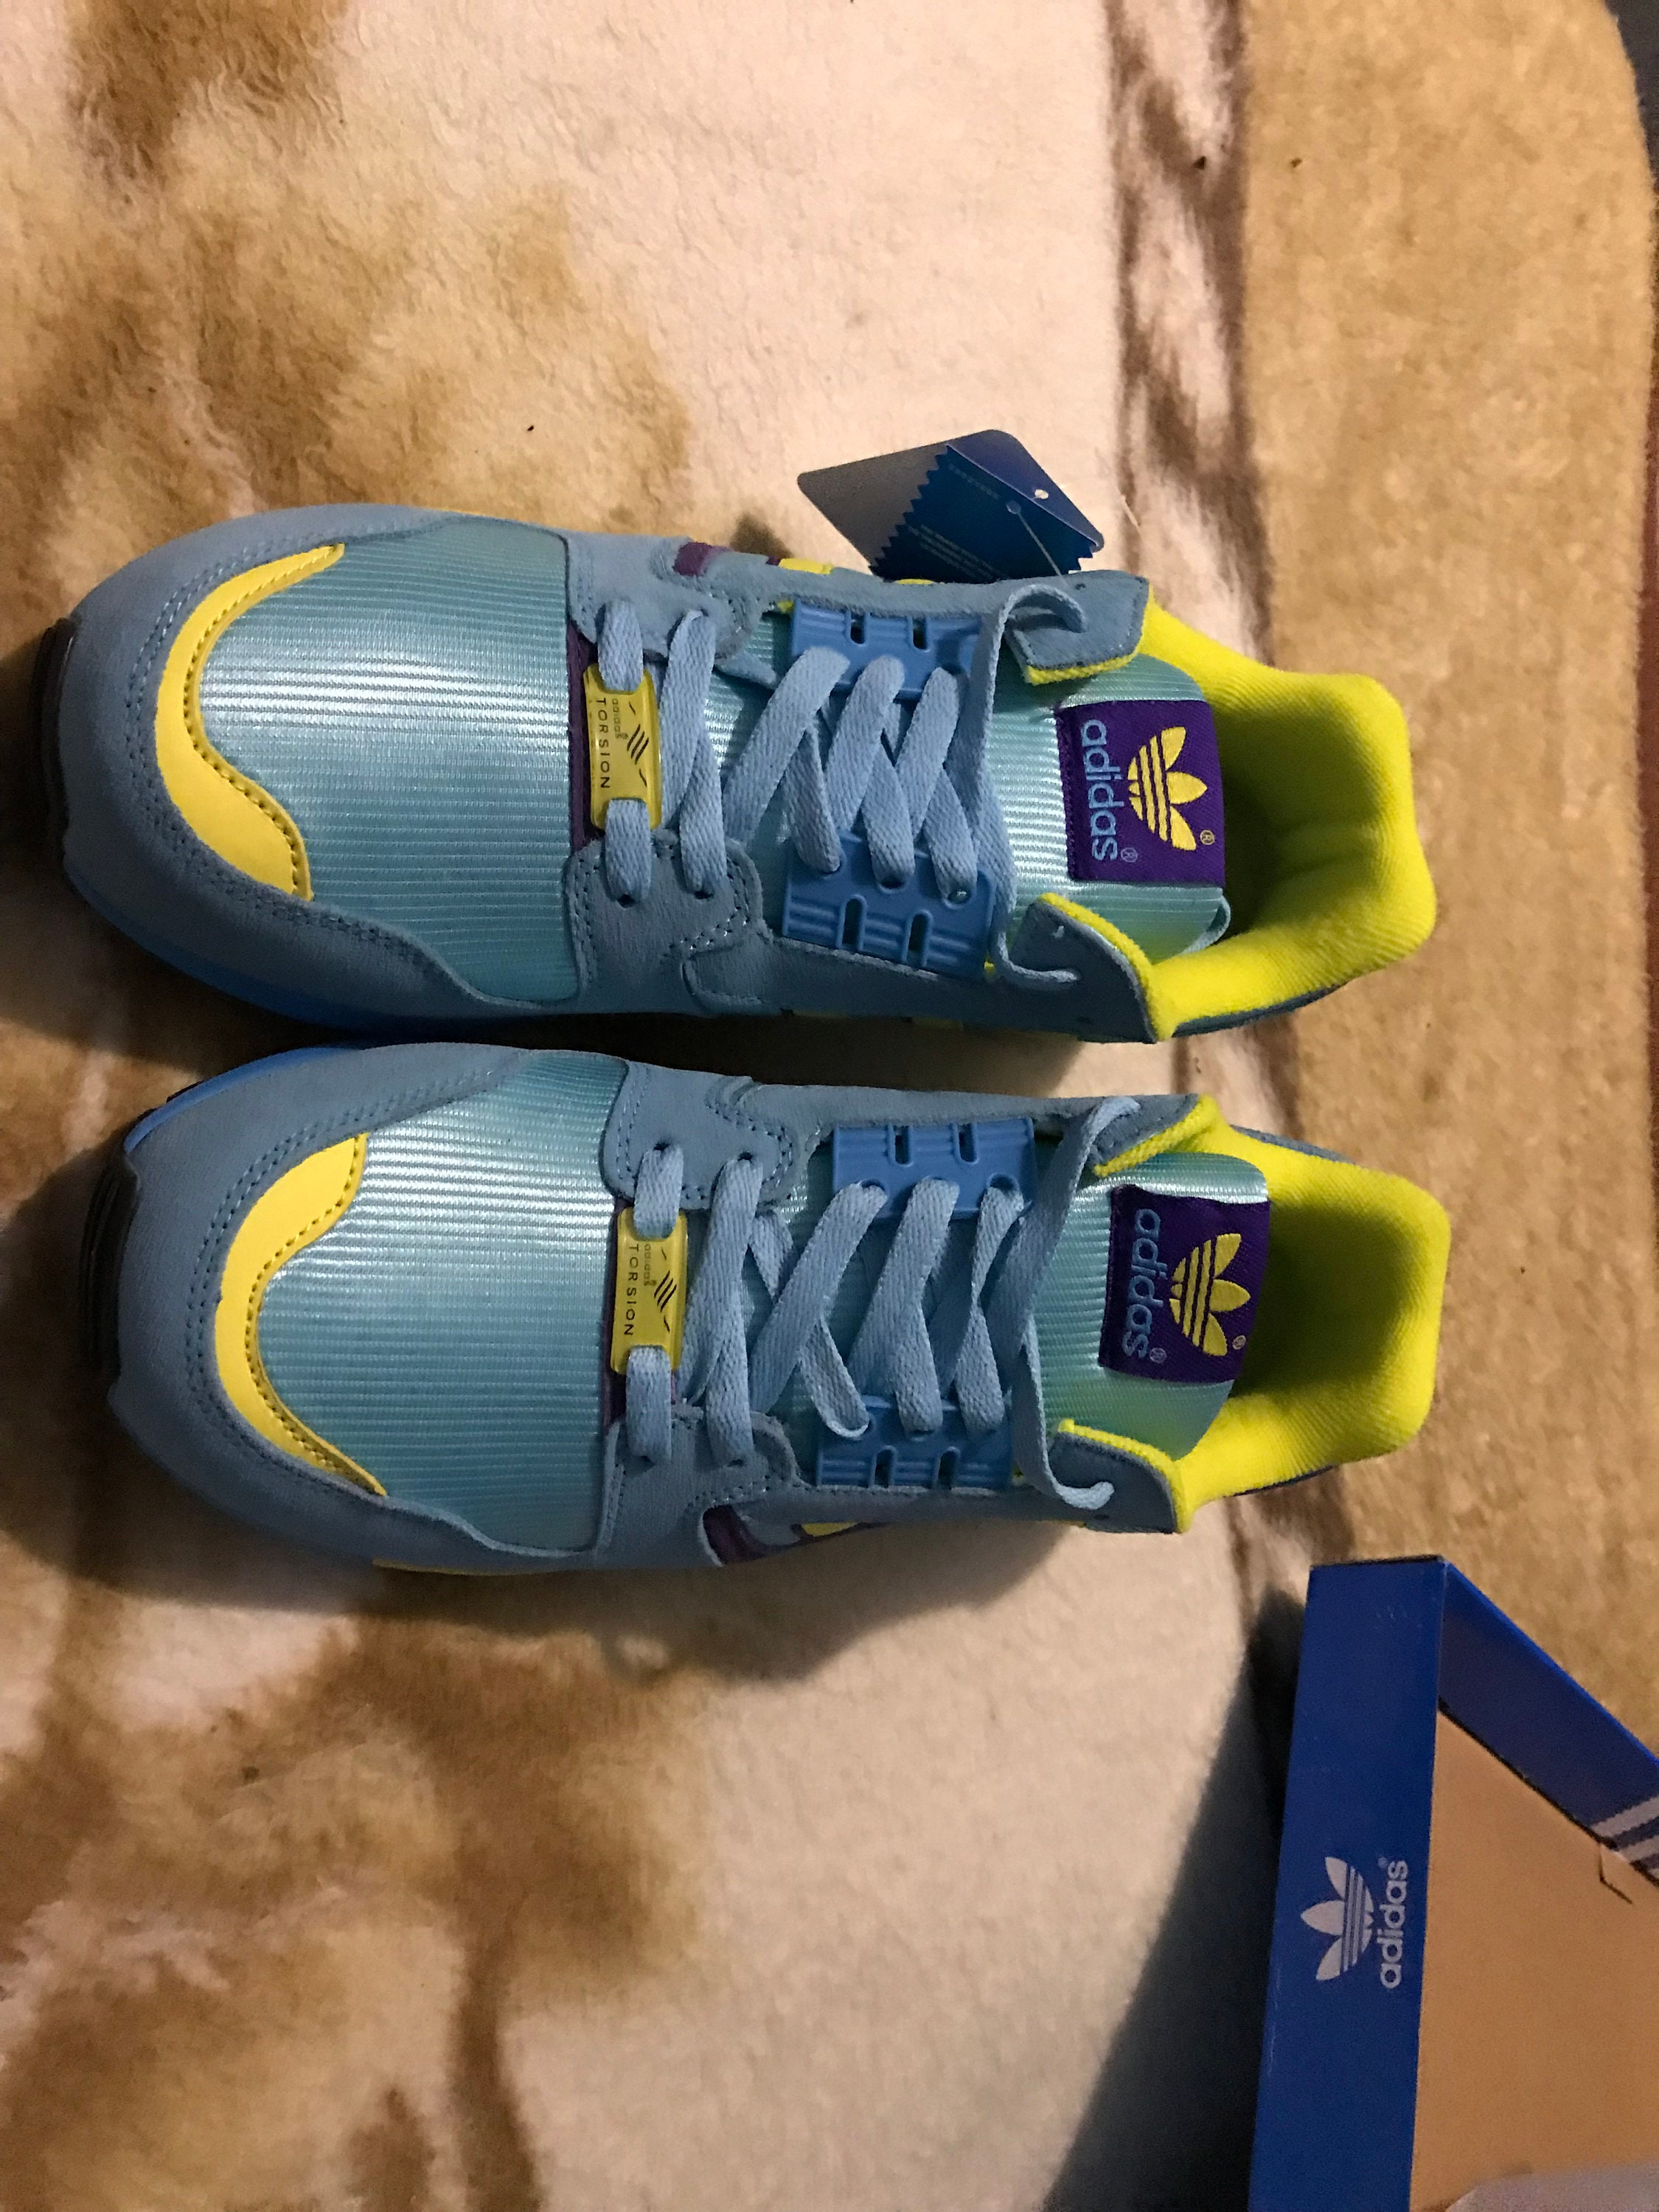 1106b28d51689 Adidas ZX 8000 US 11 yELLOW pURPLE torsion vintage new